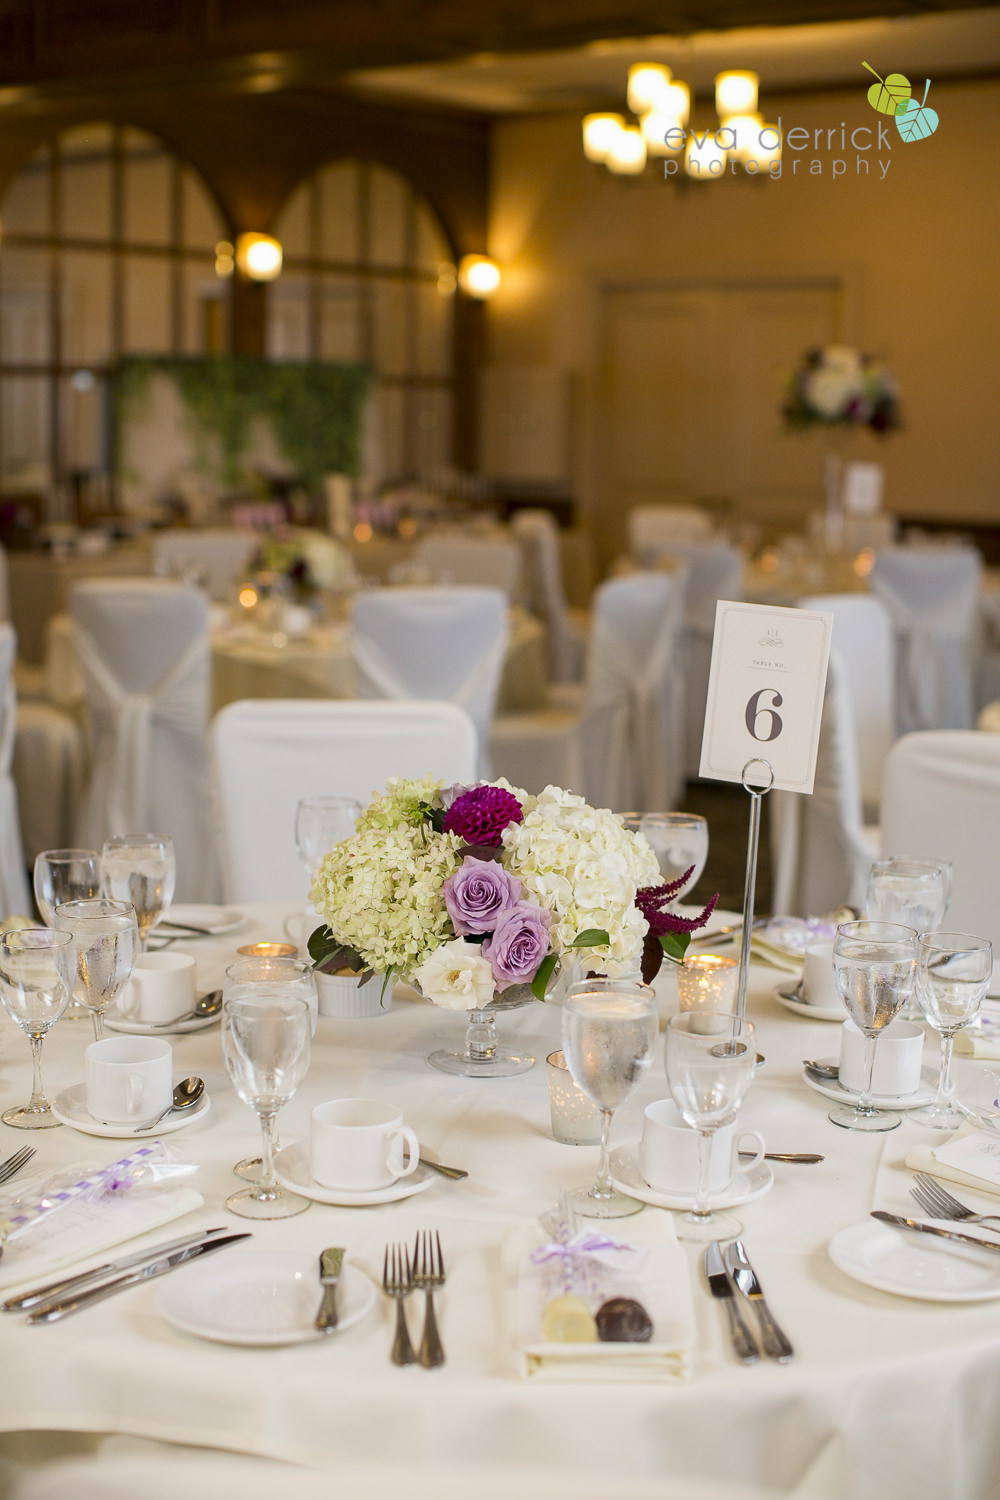 Vintage-hotels-wedding-Niagara-on-the-Lake-Pillar-and-Post-photo-by-eva-derrick-photography-050.JPG